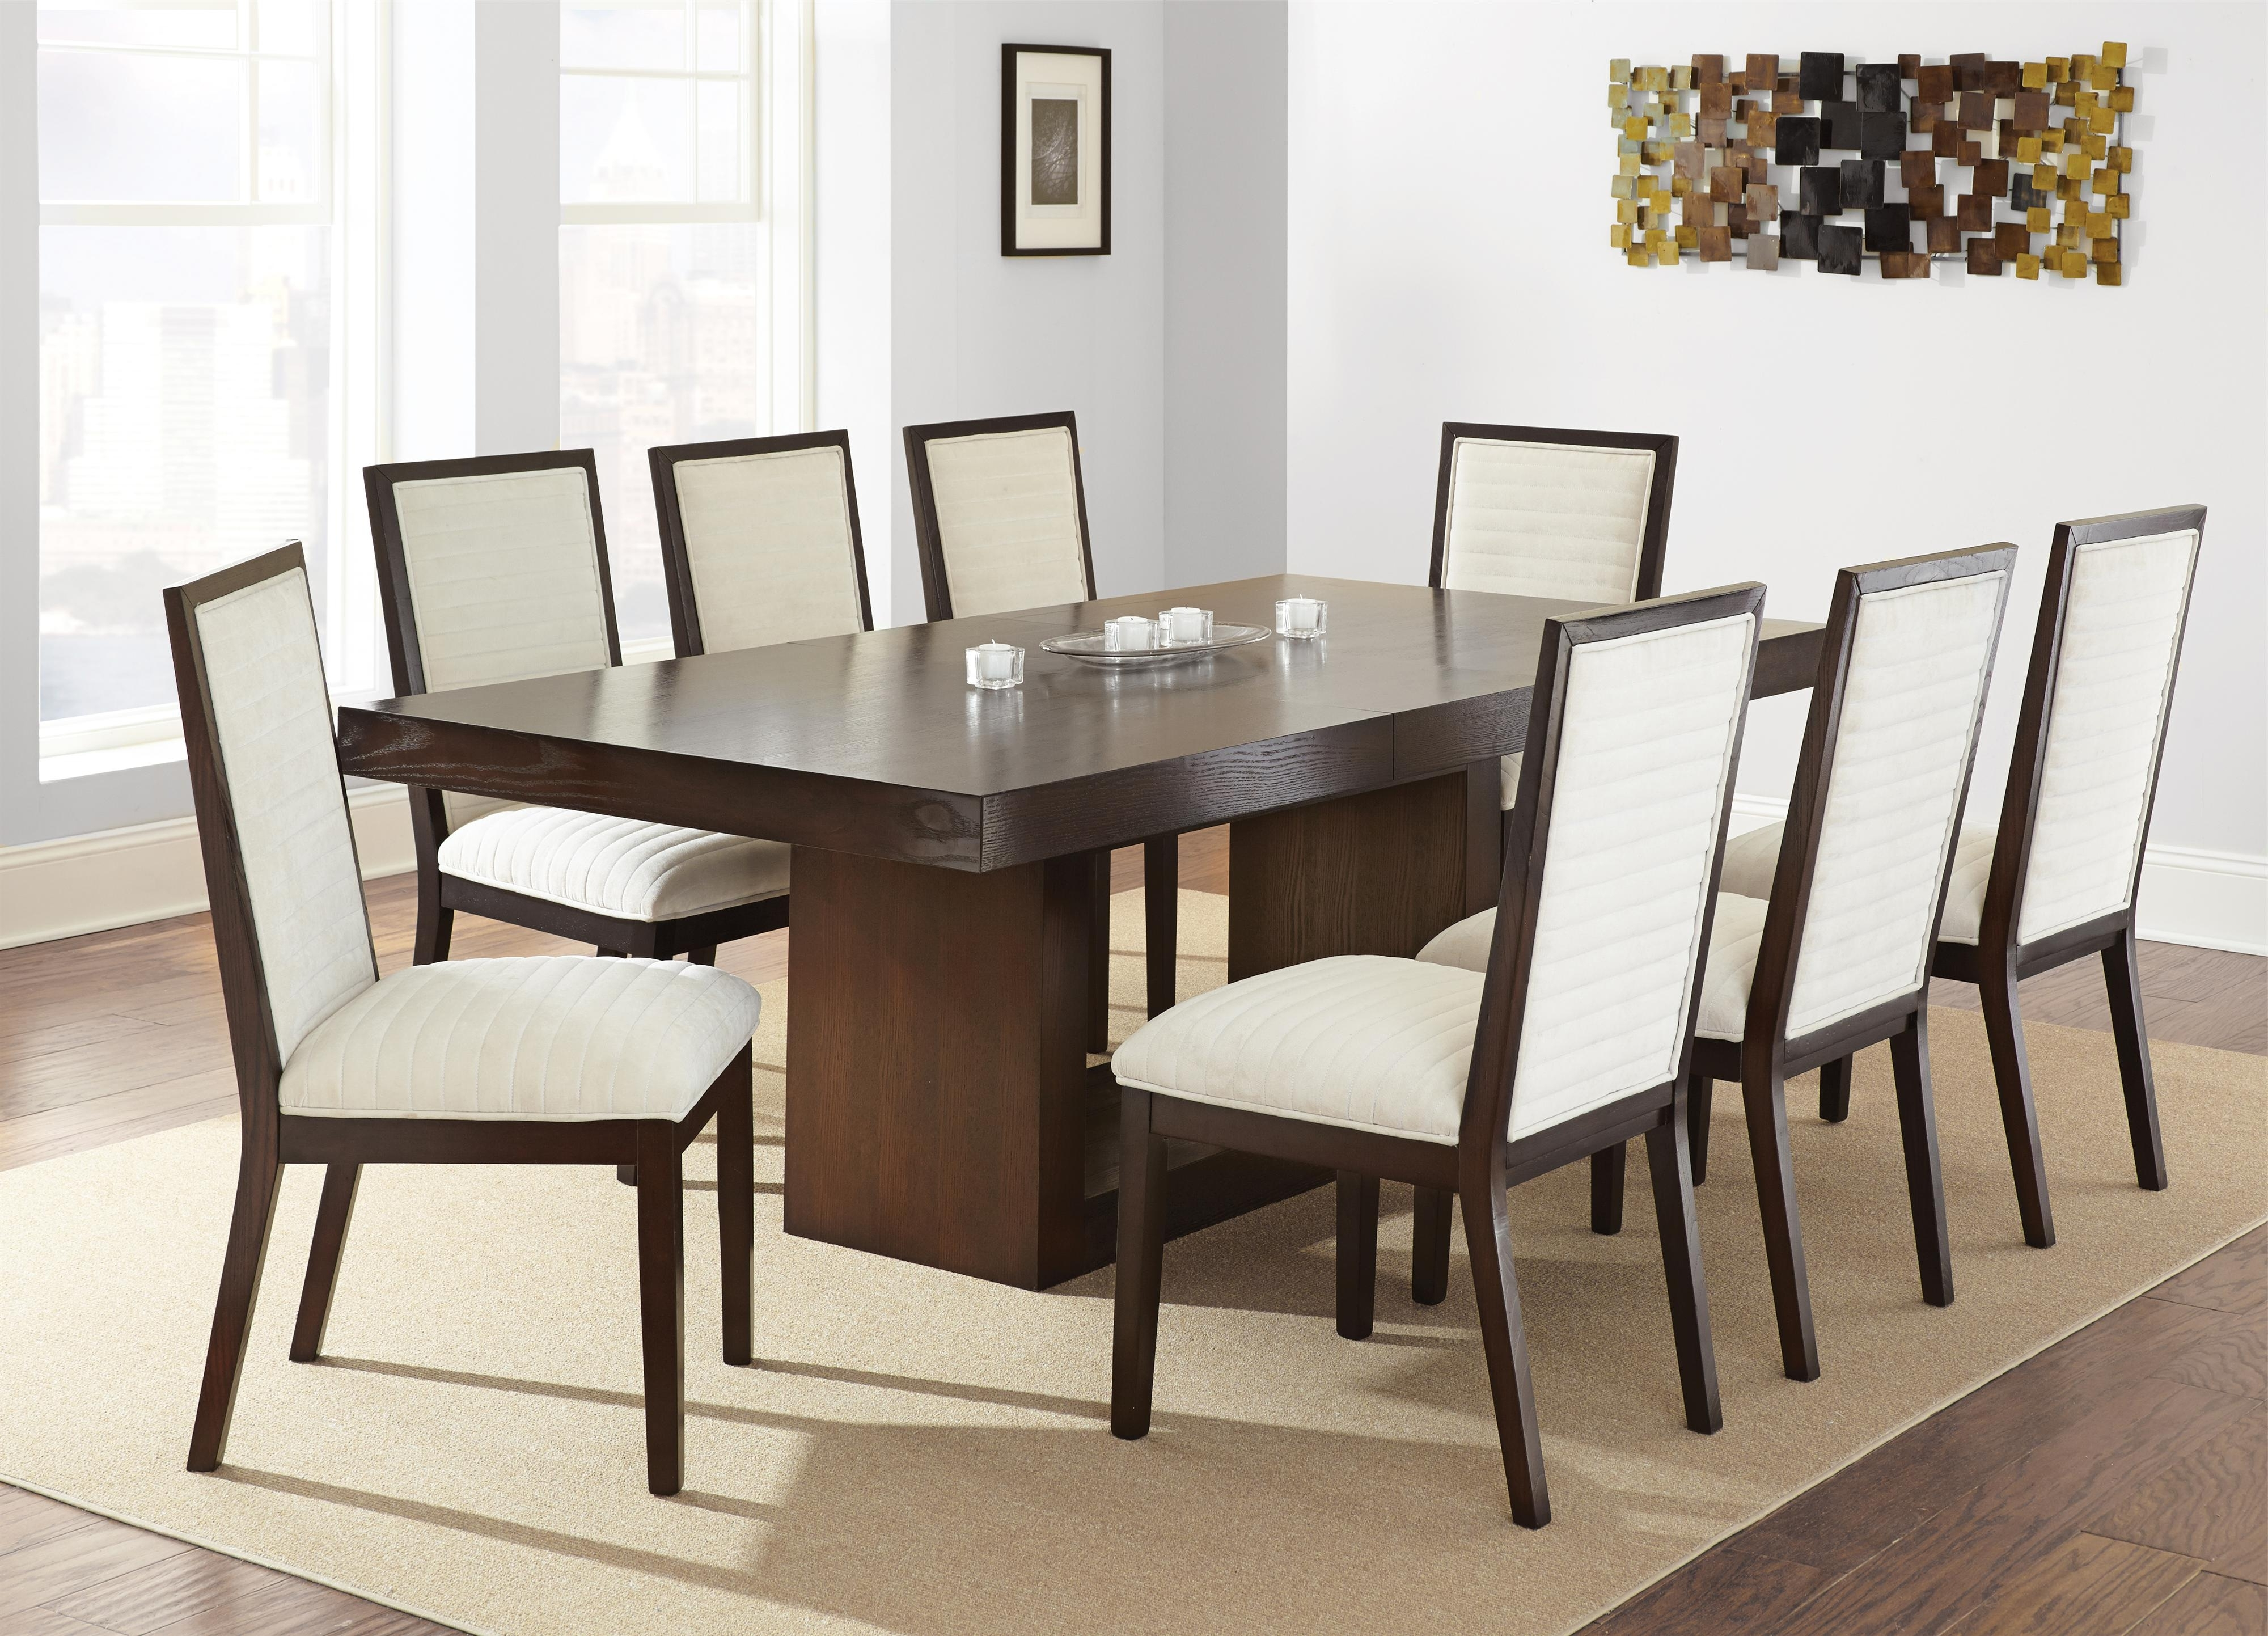 Jaxon 5 Piece Round Dining Sets With Upholstered Chairs intended for Newest Steve Silver Antonio 7 Piece Dining Set